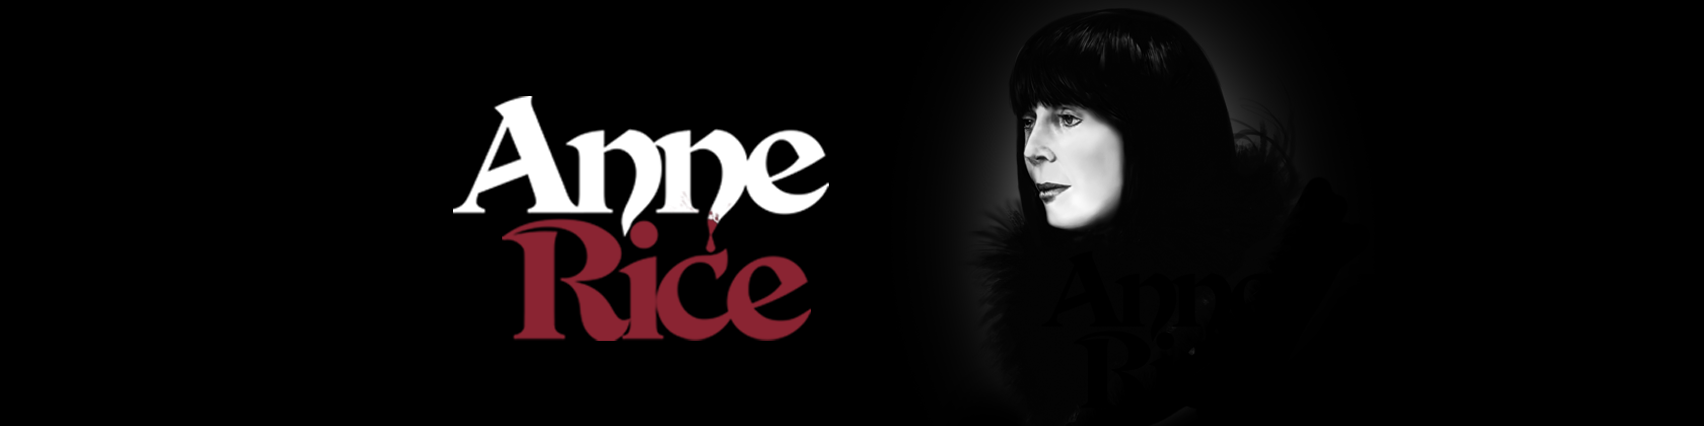 Anne Rice logo